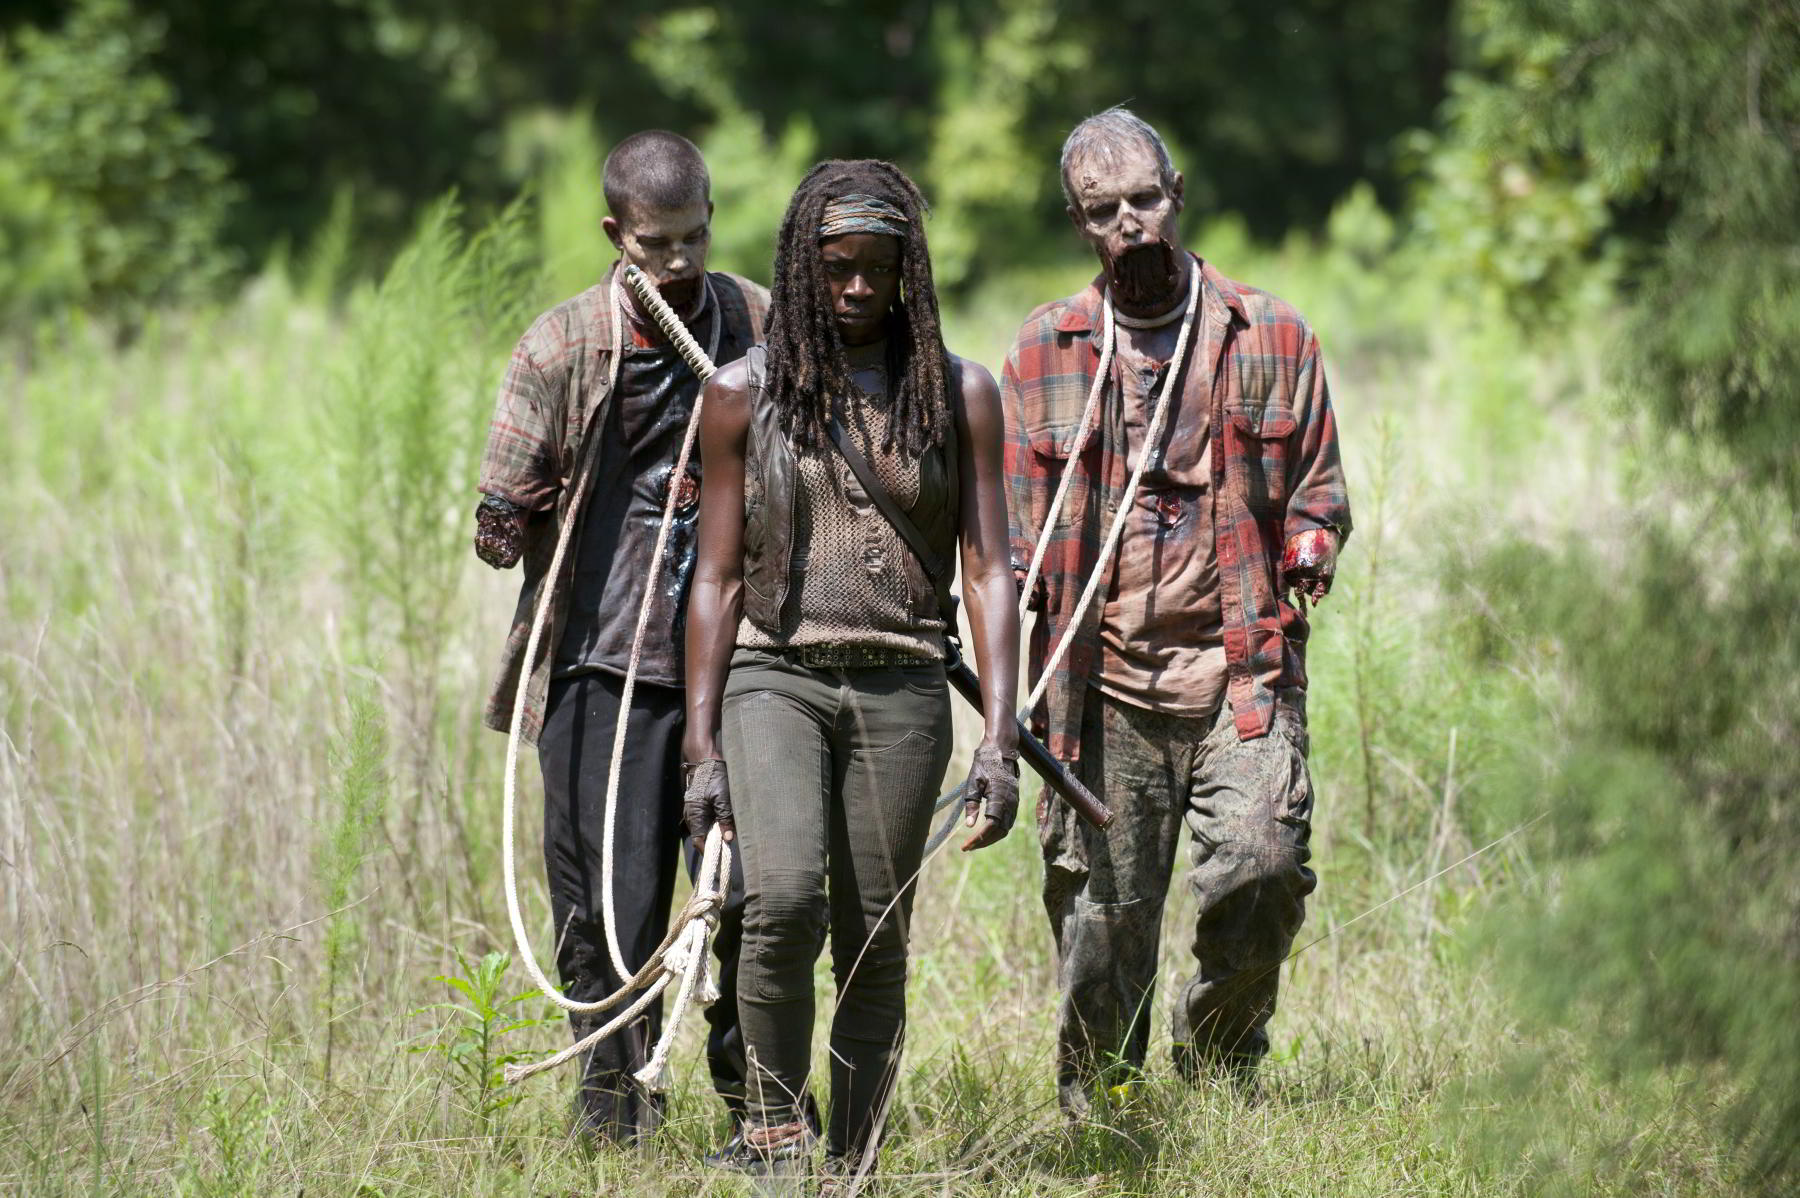 walkingdeads4e9-after-michonne-with-walkers